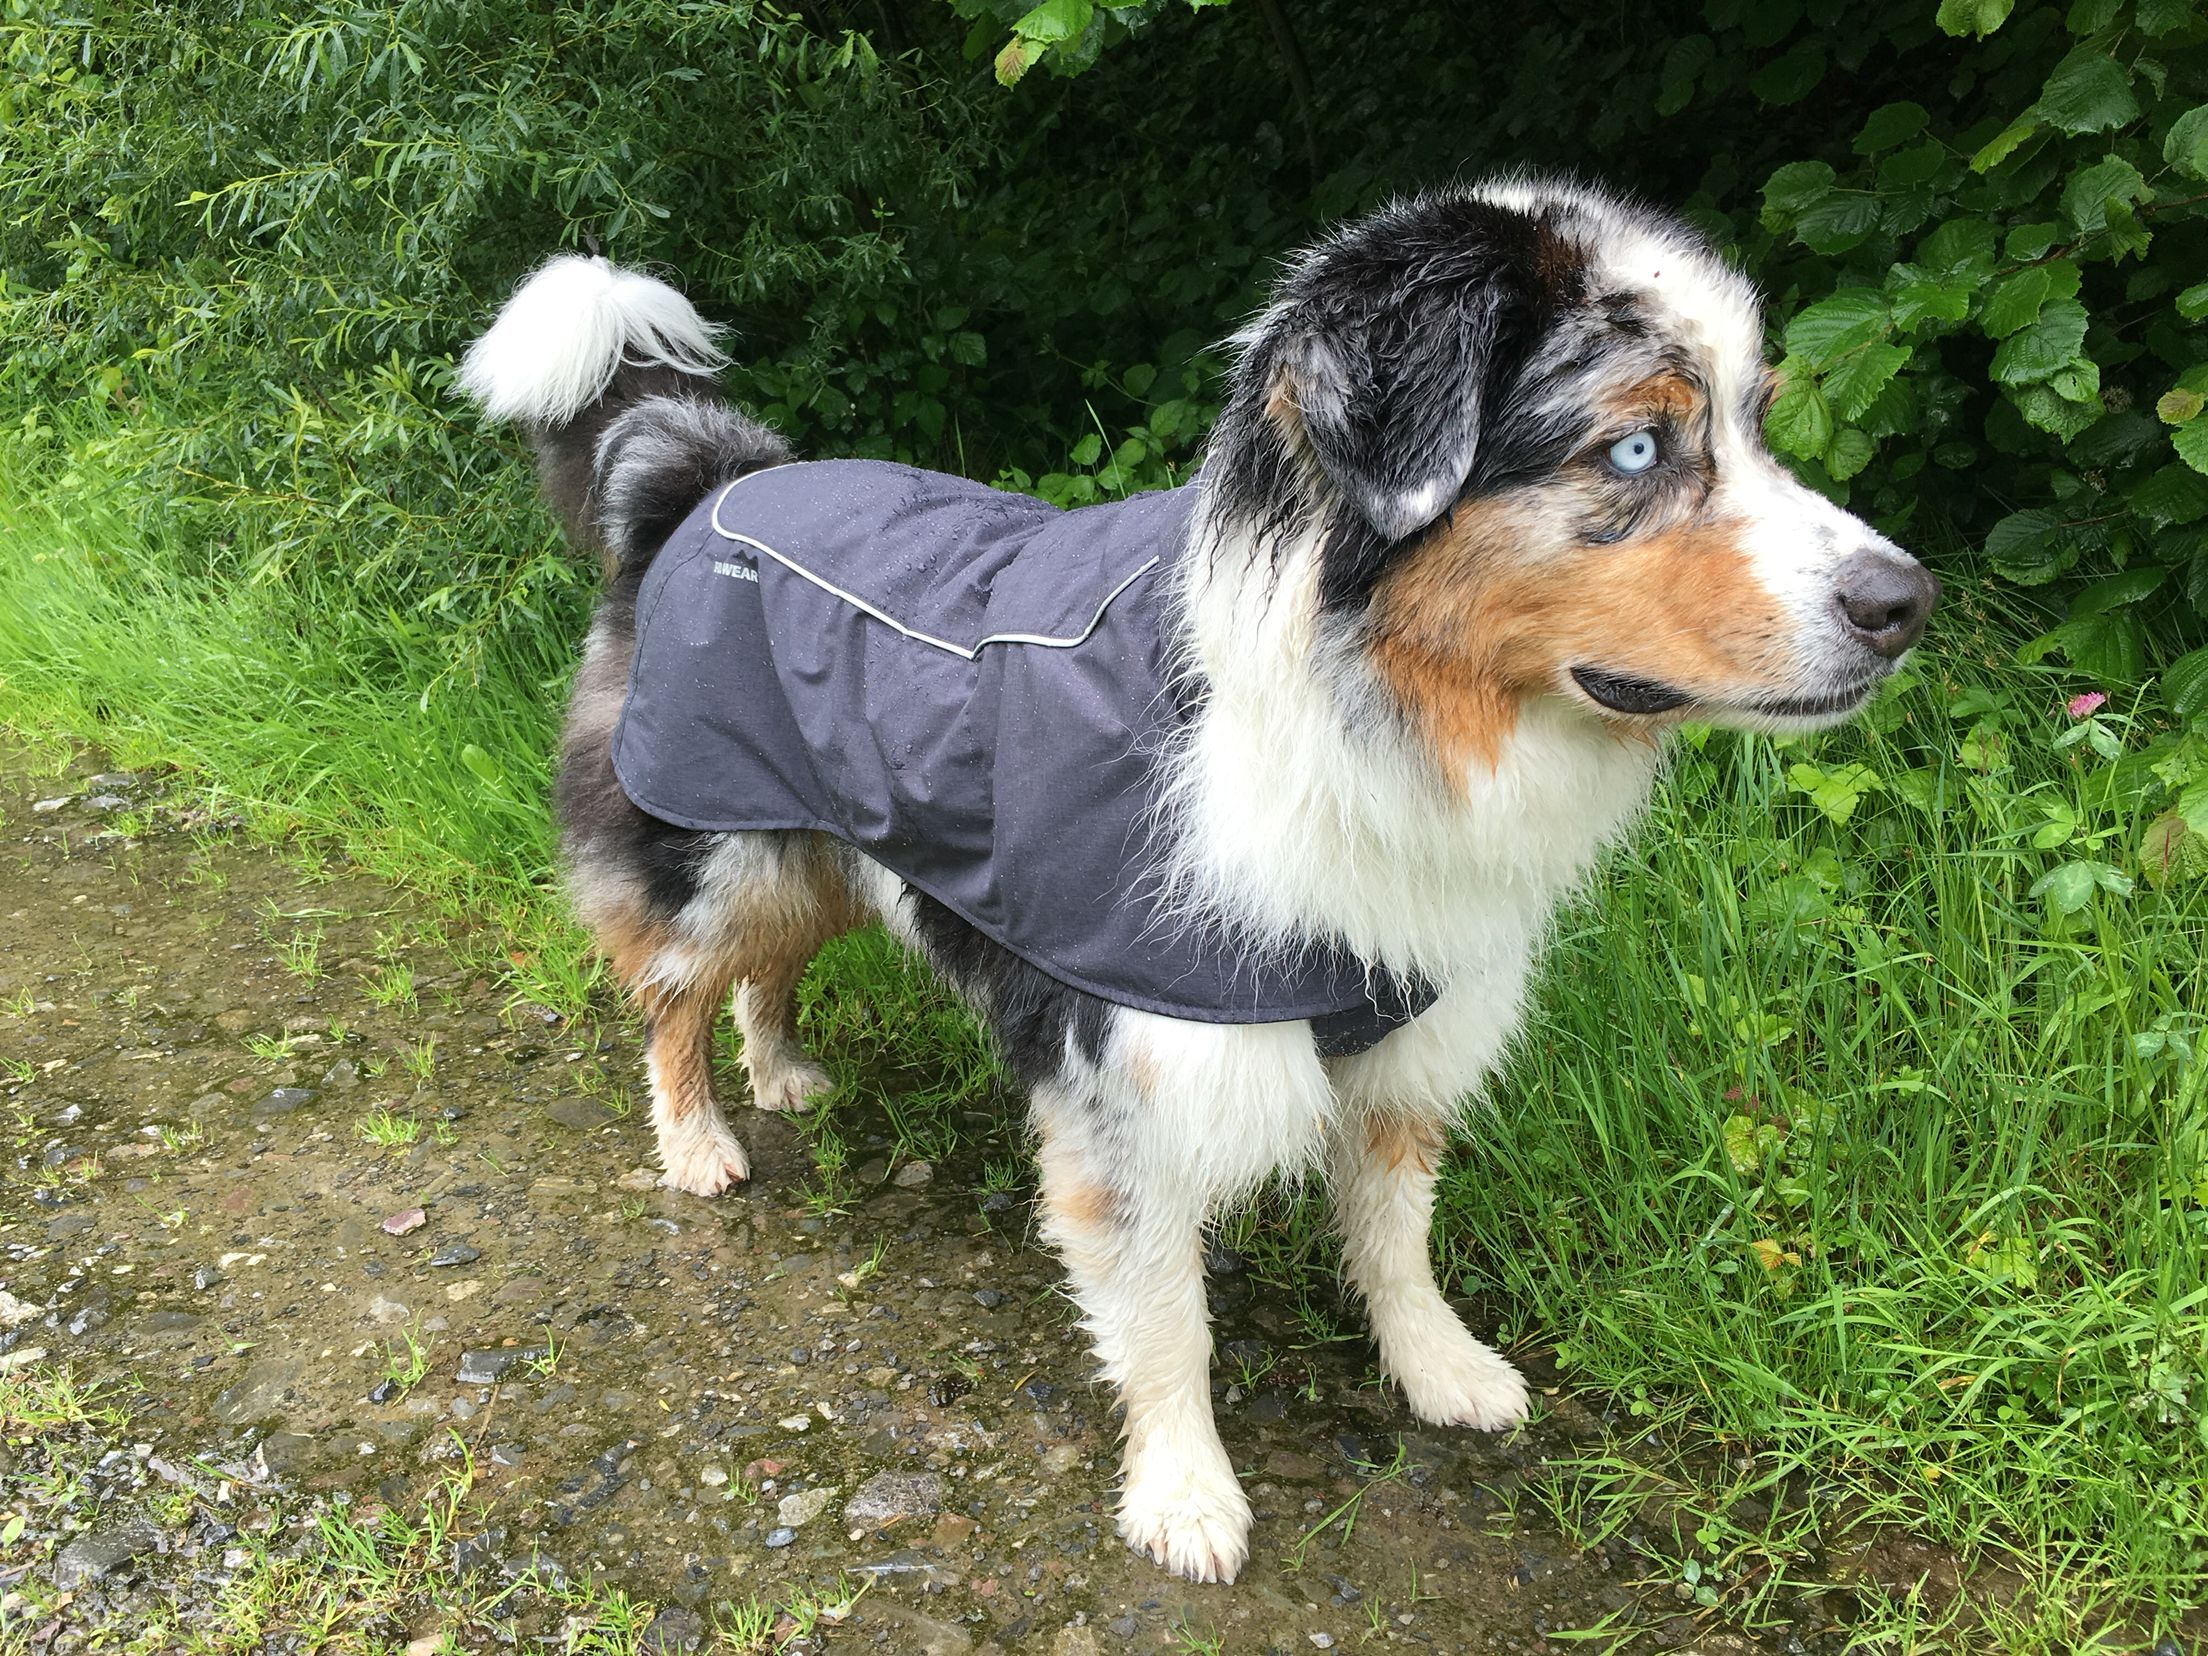 Timmy with his ever first Raincoat by Ruffwear